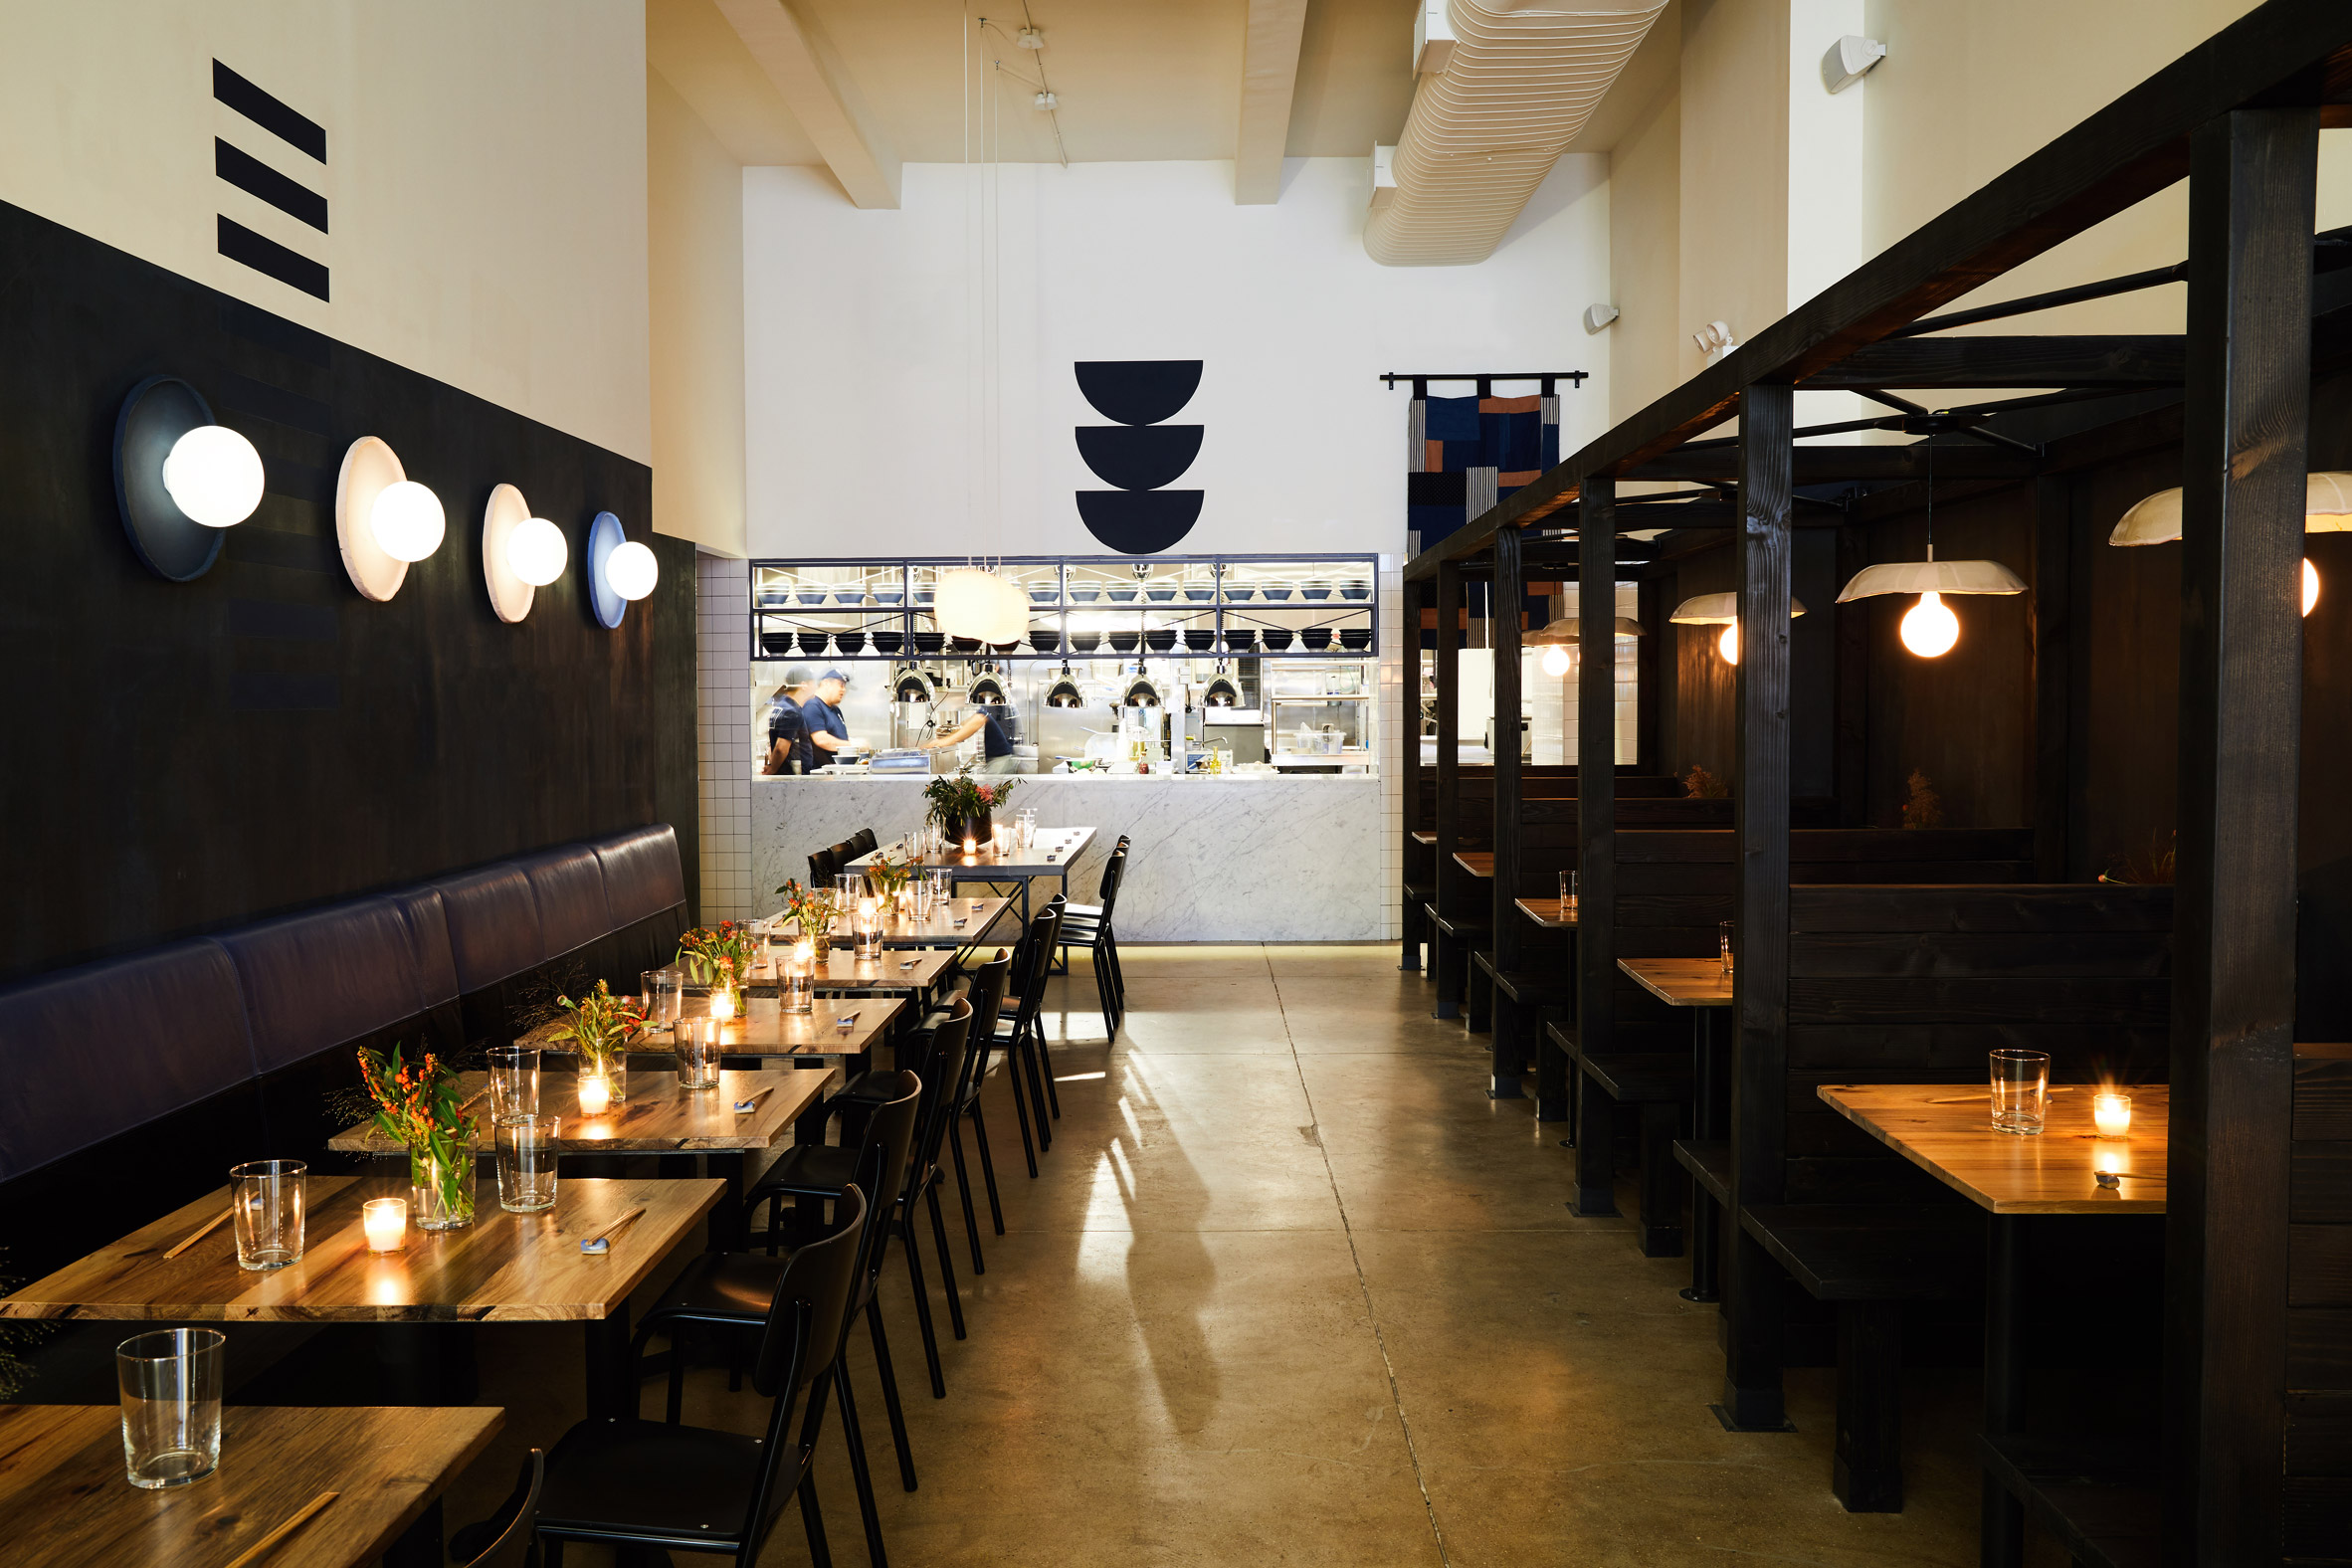 tonchin-restaurant-carpenter-and-mason-interiors_dezeen_2364_col_13.jpg